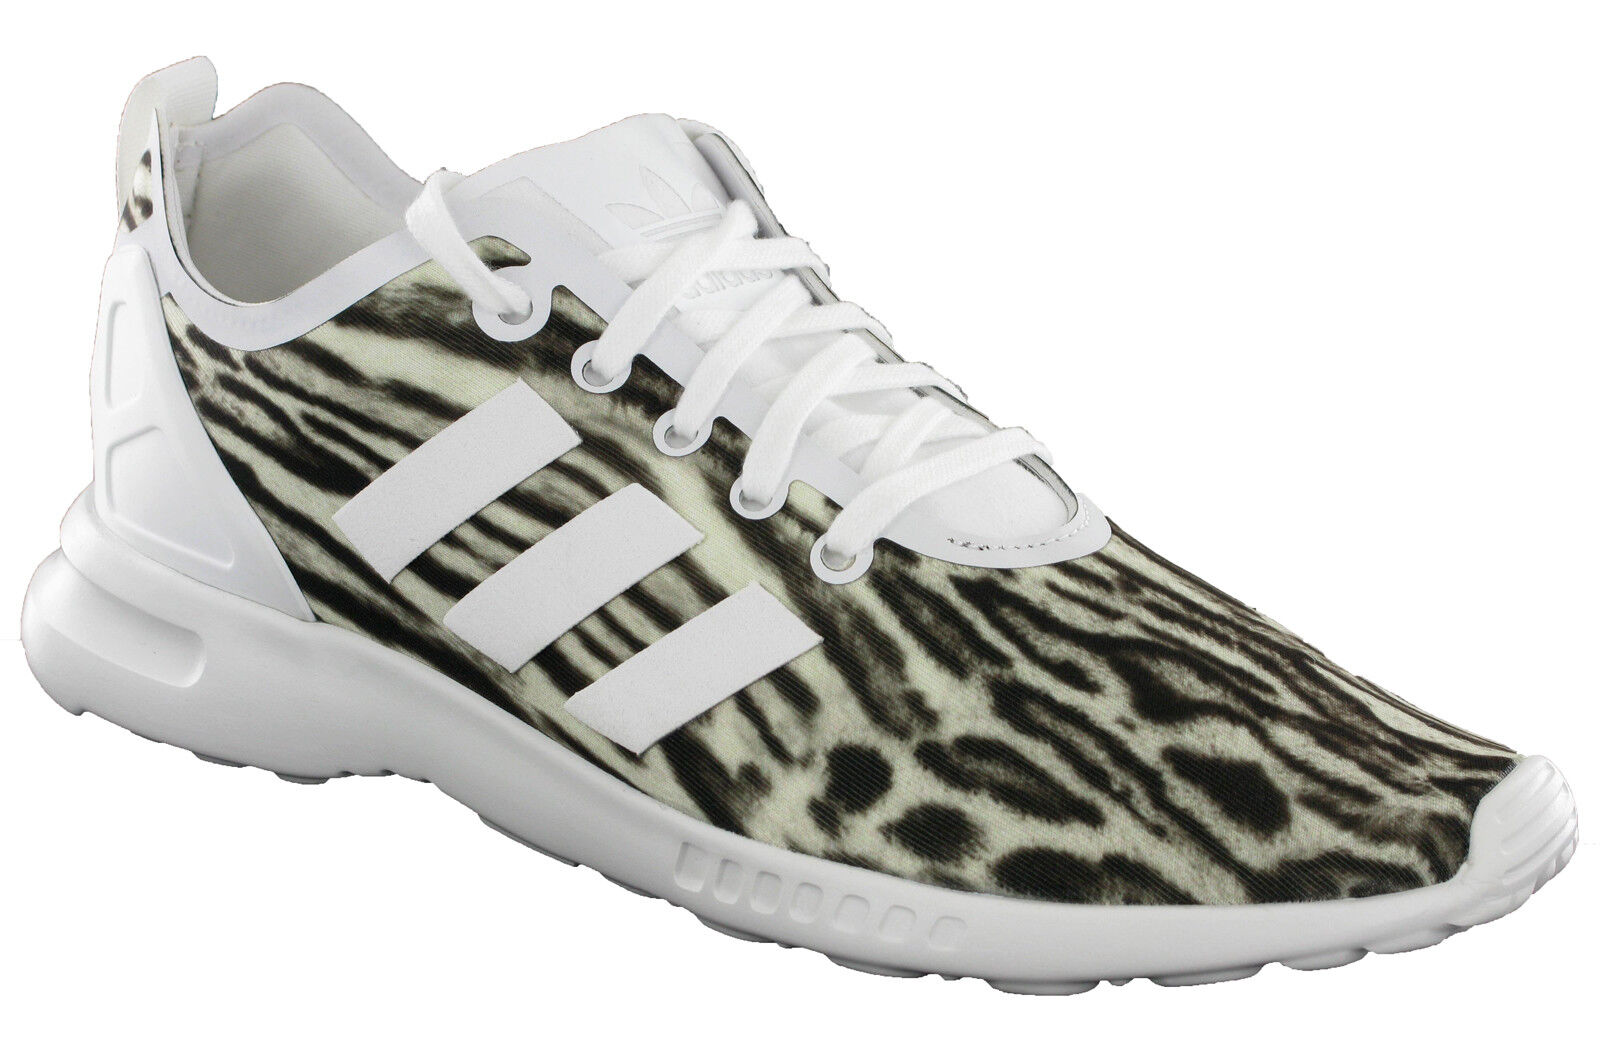 Details about Adidas ZX Flux ADV Smooth Trainers Sports Womens Lace White Zebra AQ5645